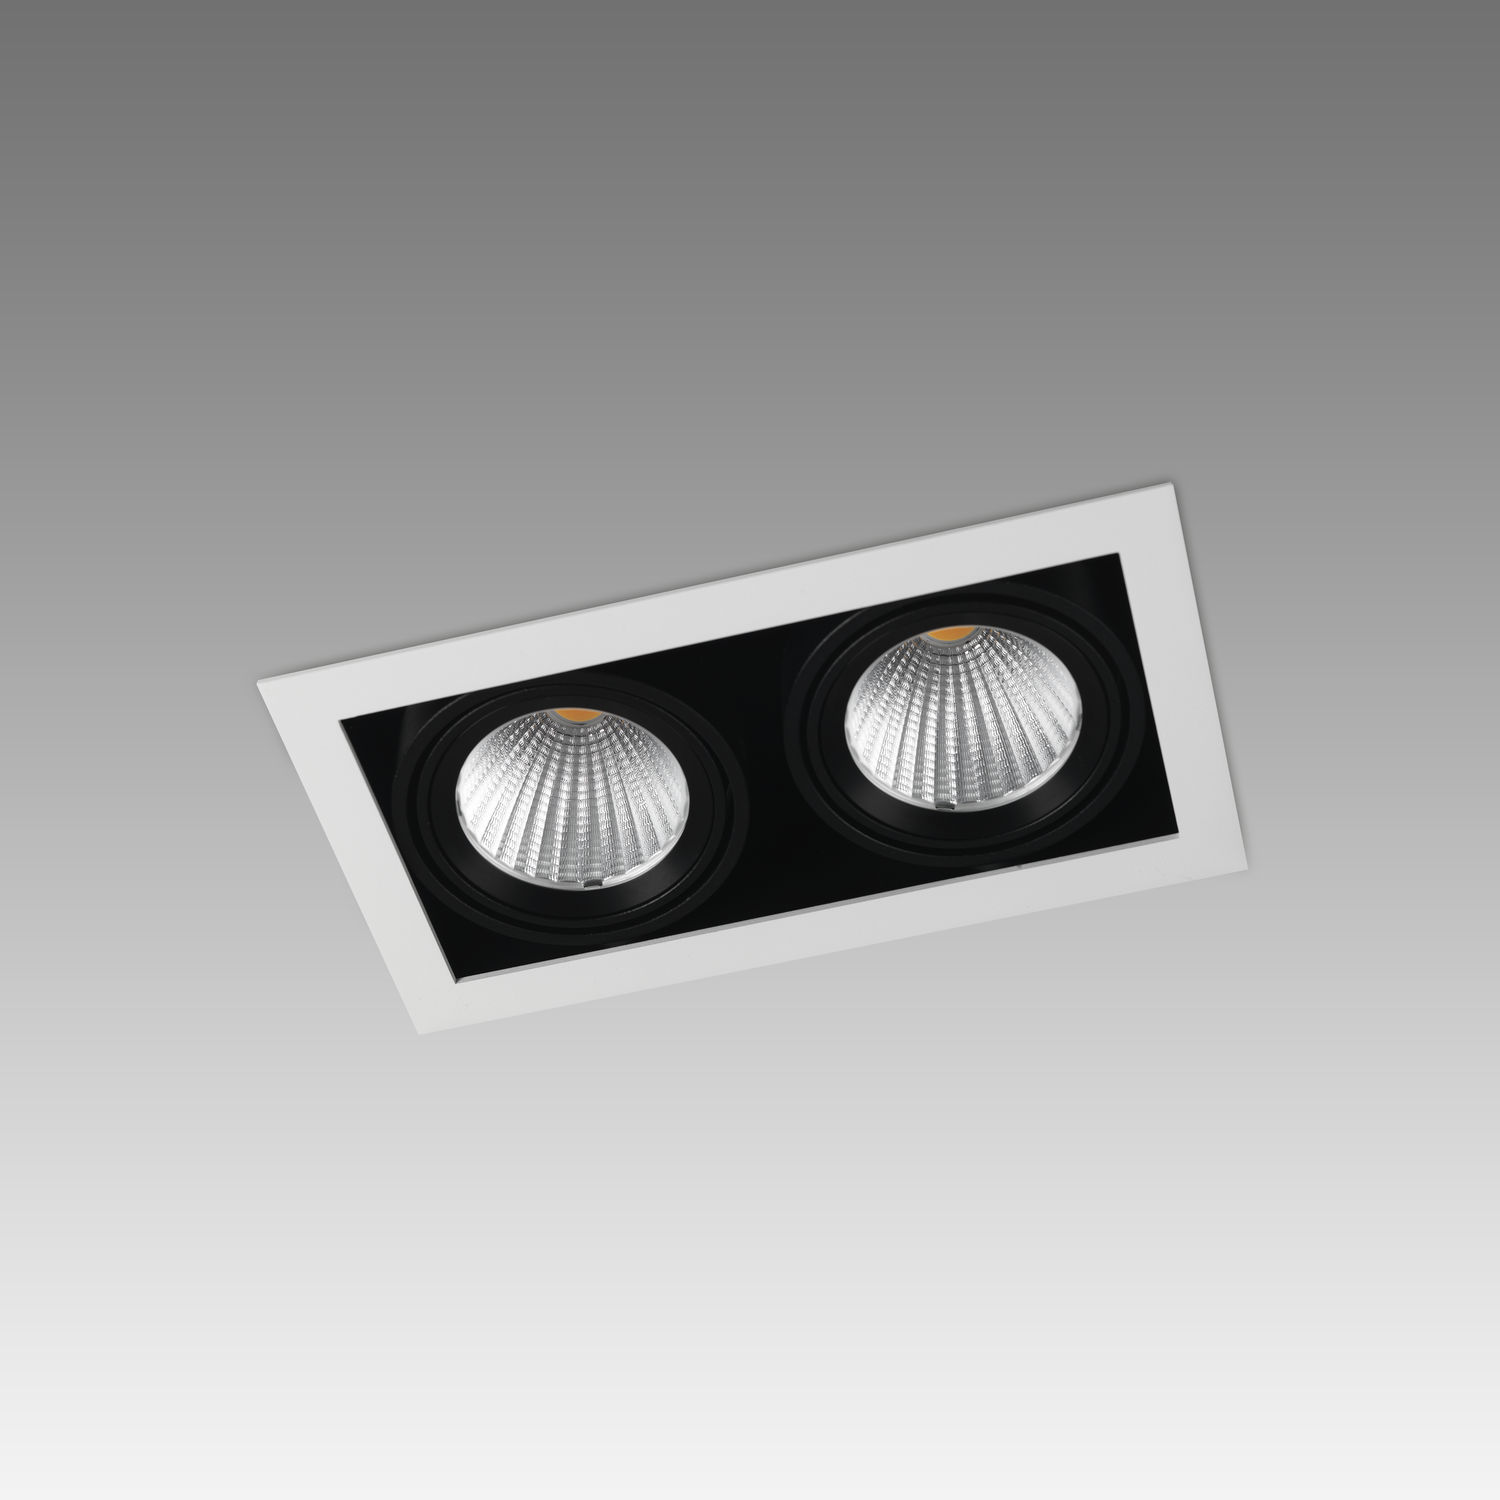 Recessed ceiling spotlight indoor led square piccolo frame recessed ceiling spotlight indoor led square aloadofball